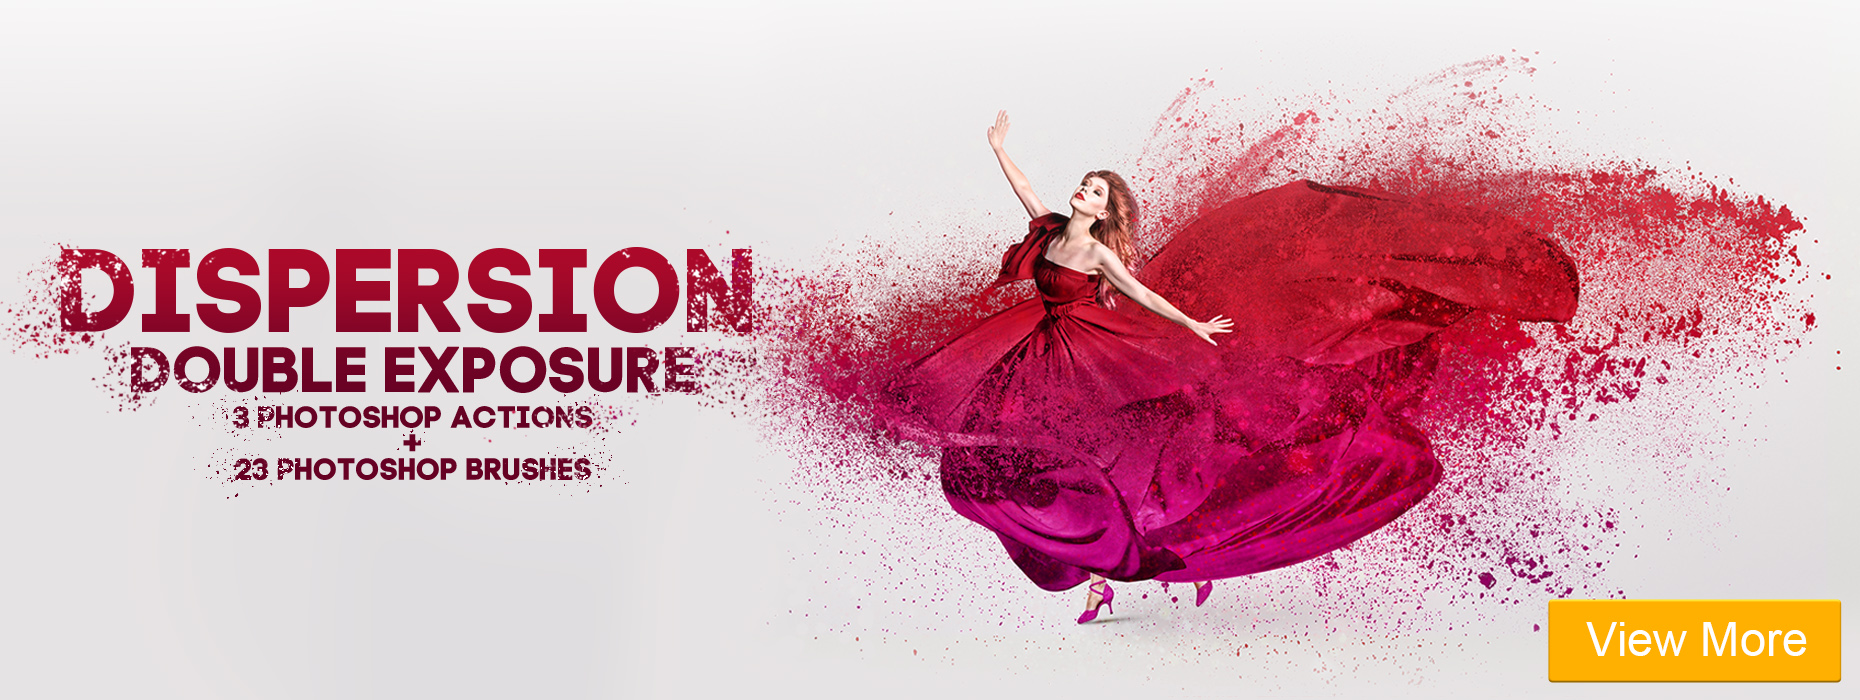 fashion photoshop actions free dispersion double exposure banner woman in red